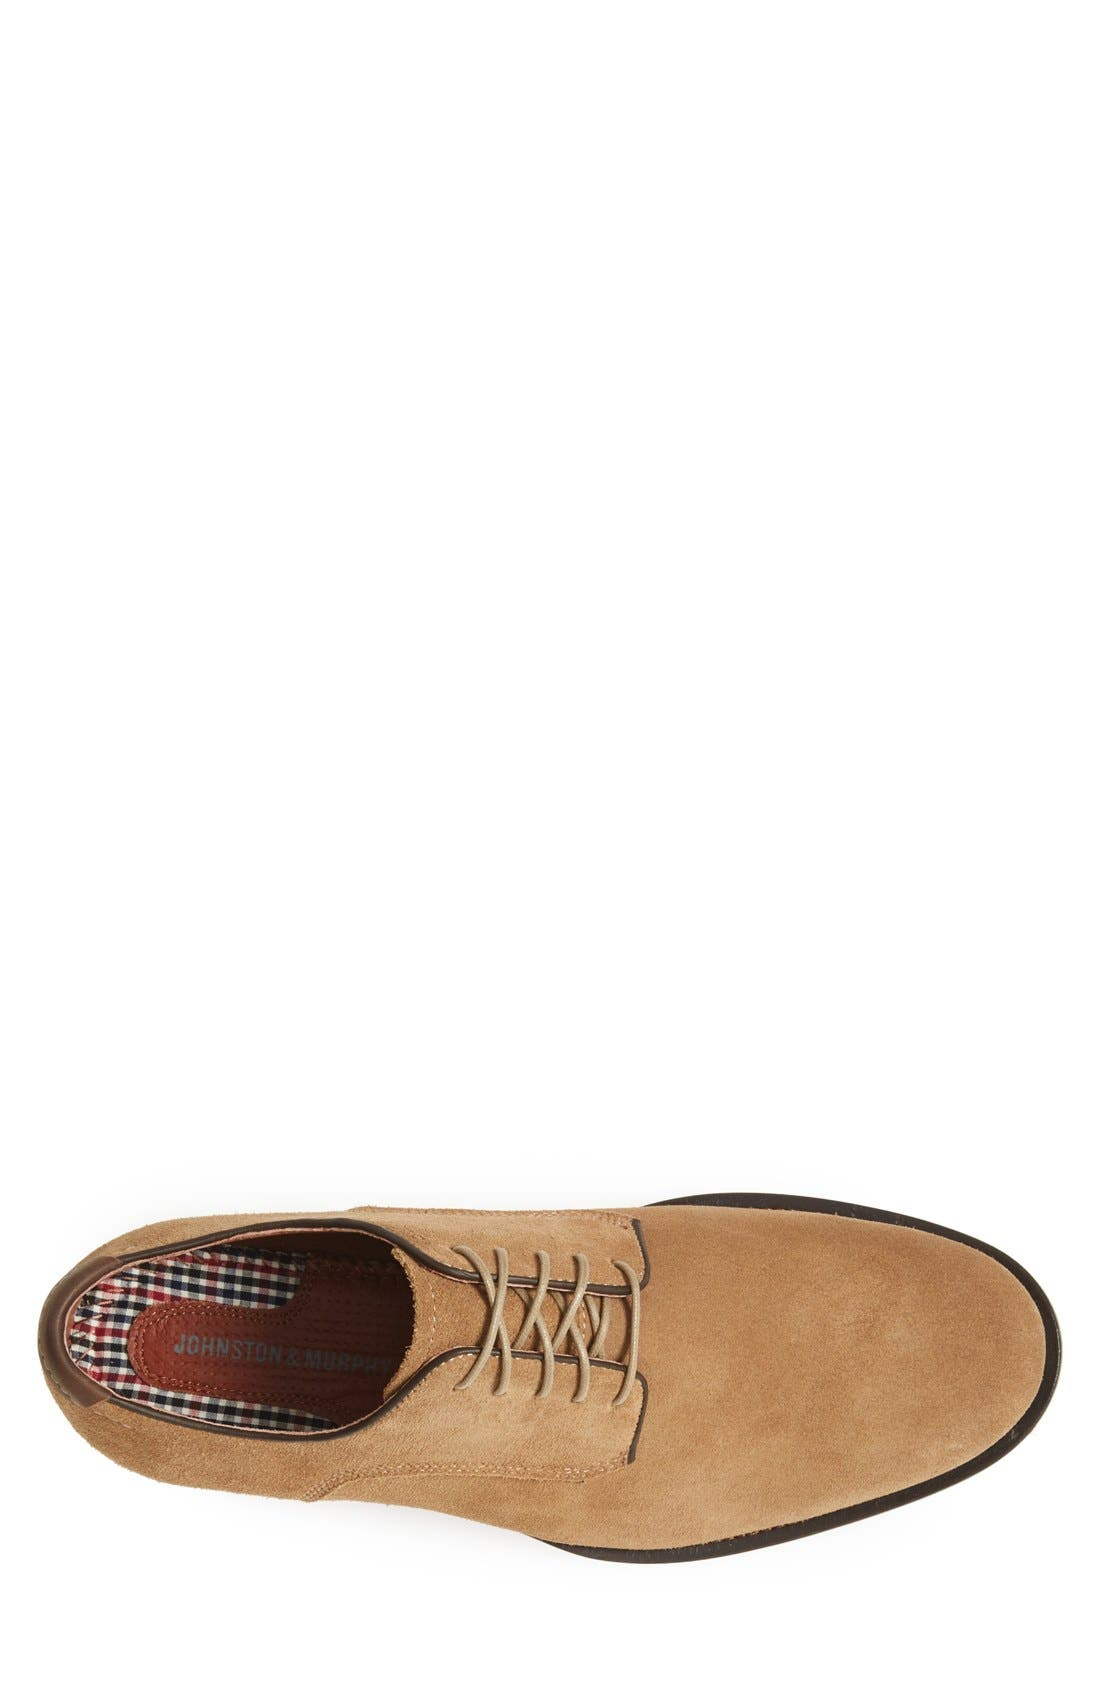 Alternate Image 3  - Johnston & Murphy 'Ellington' Suede Buck Shoe (Men)